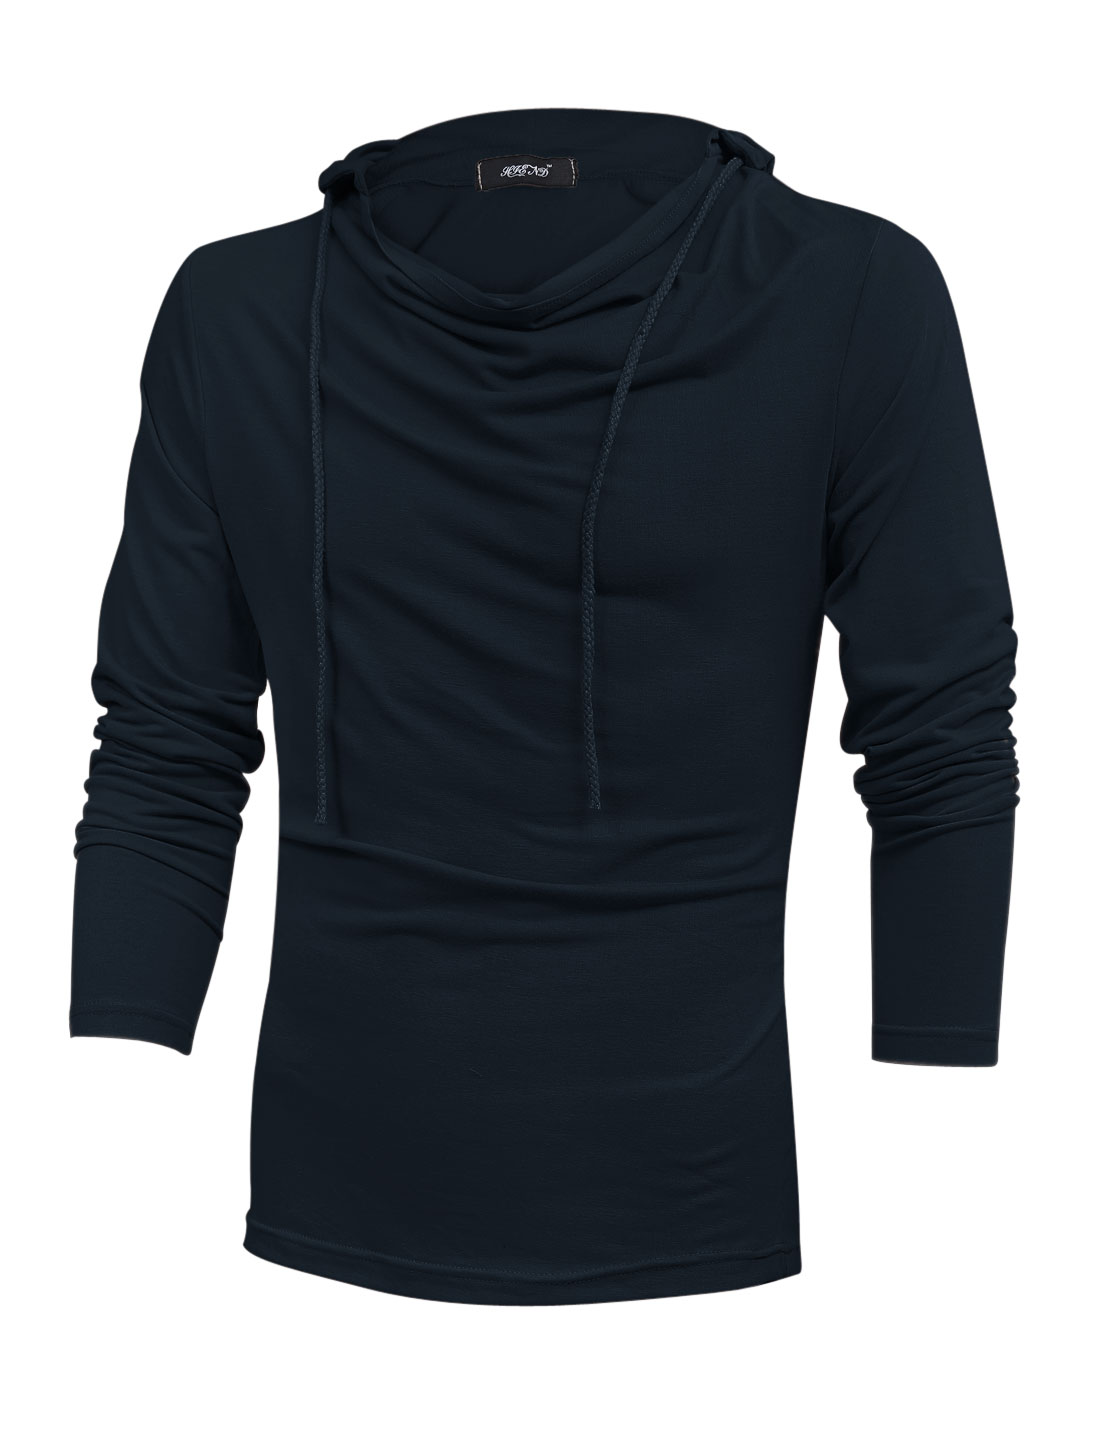 Men Cowl Neck Pullover Cozy Fit Hooded Sweatshirt Navy Blue M